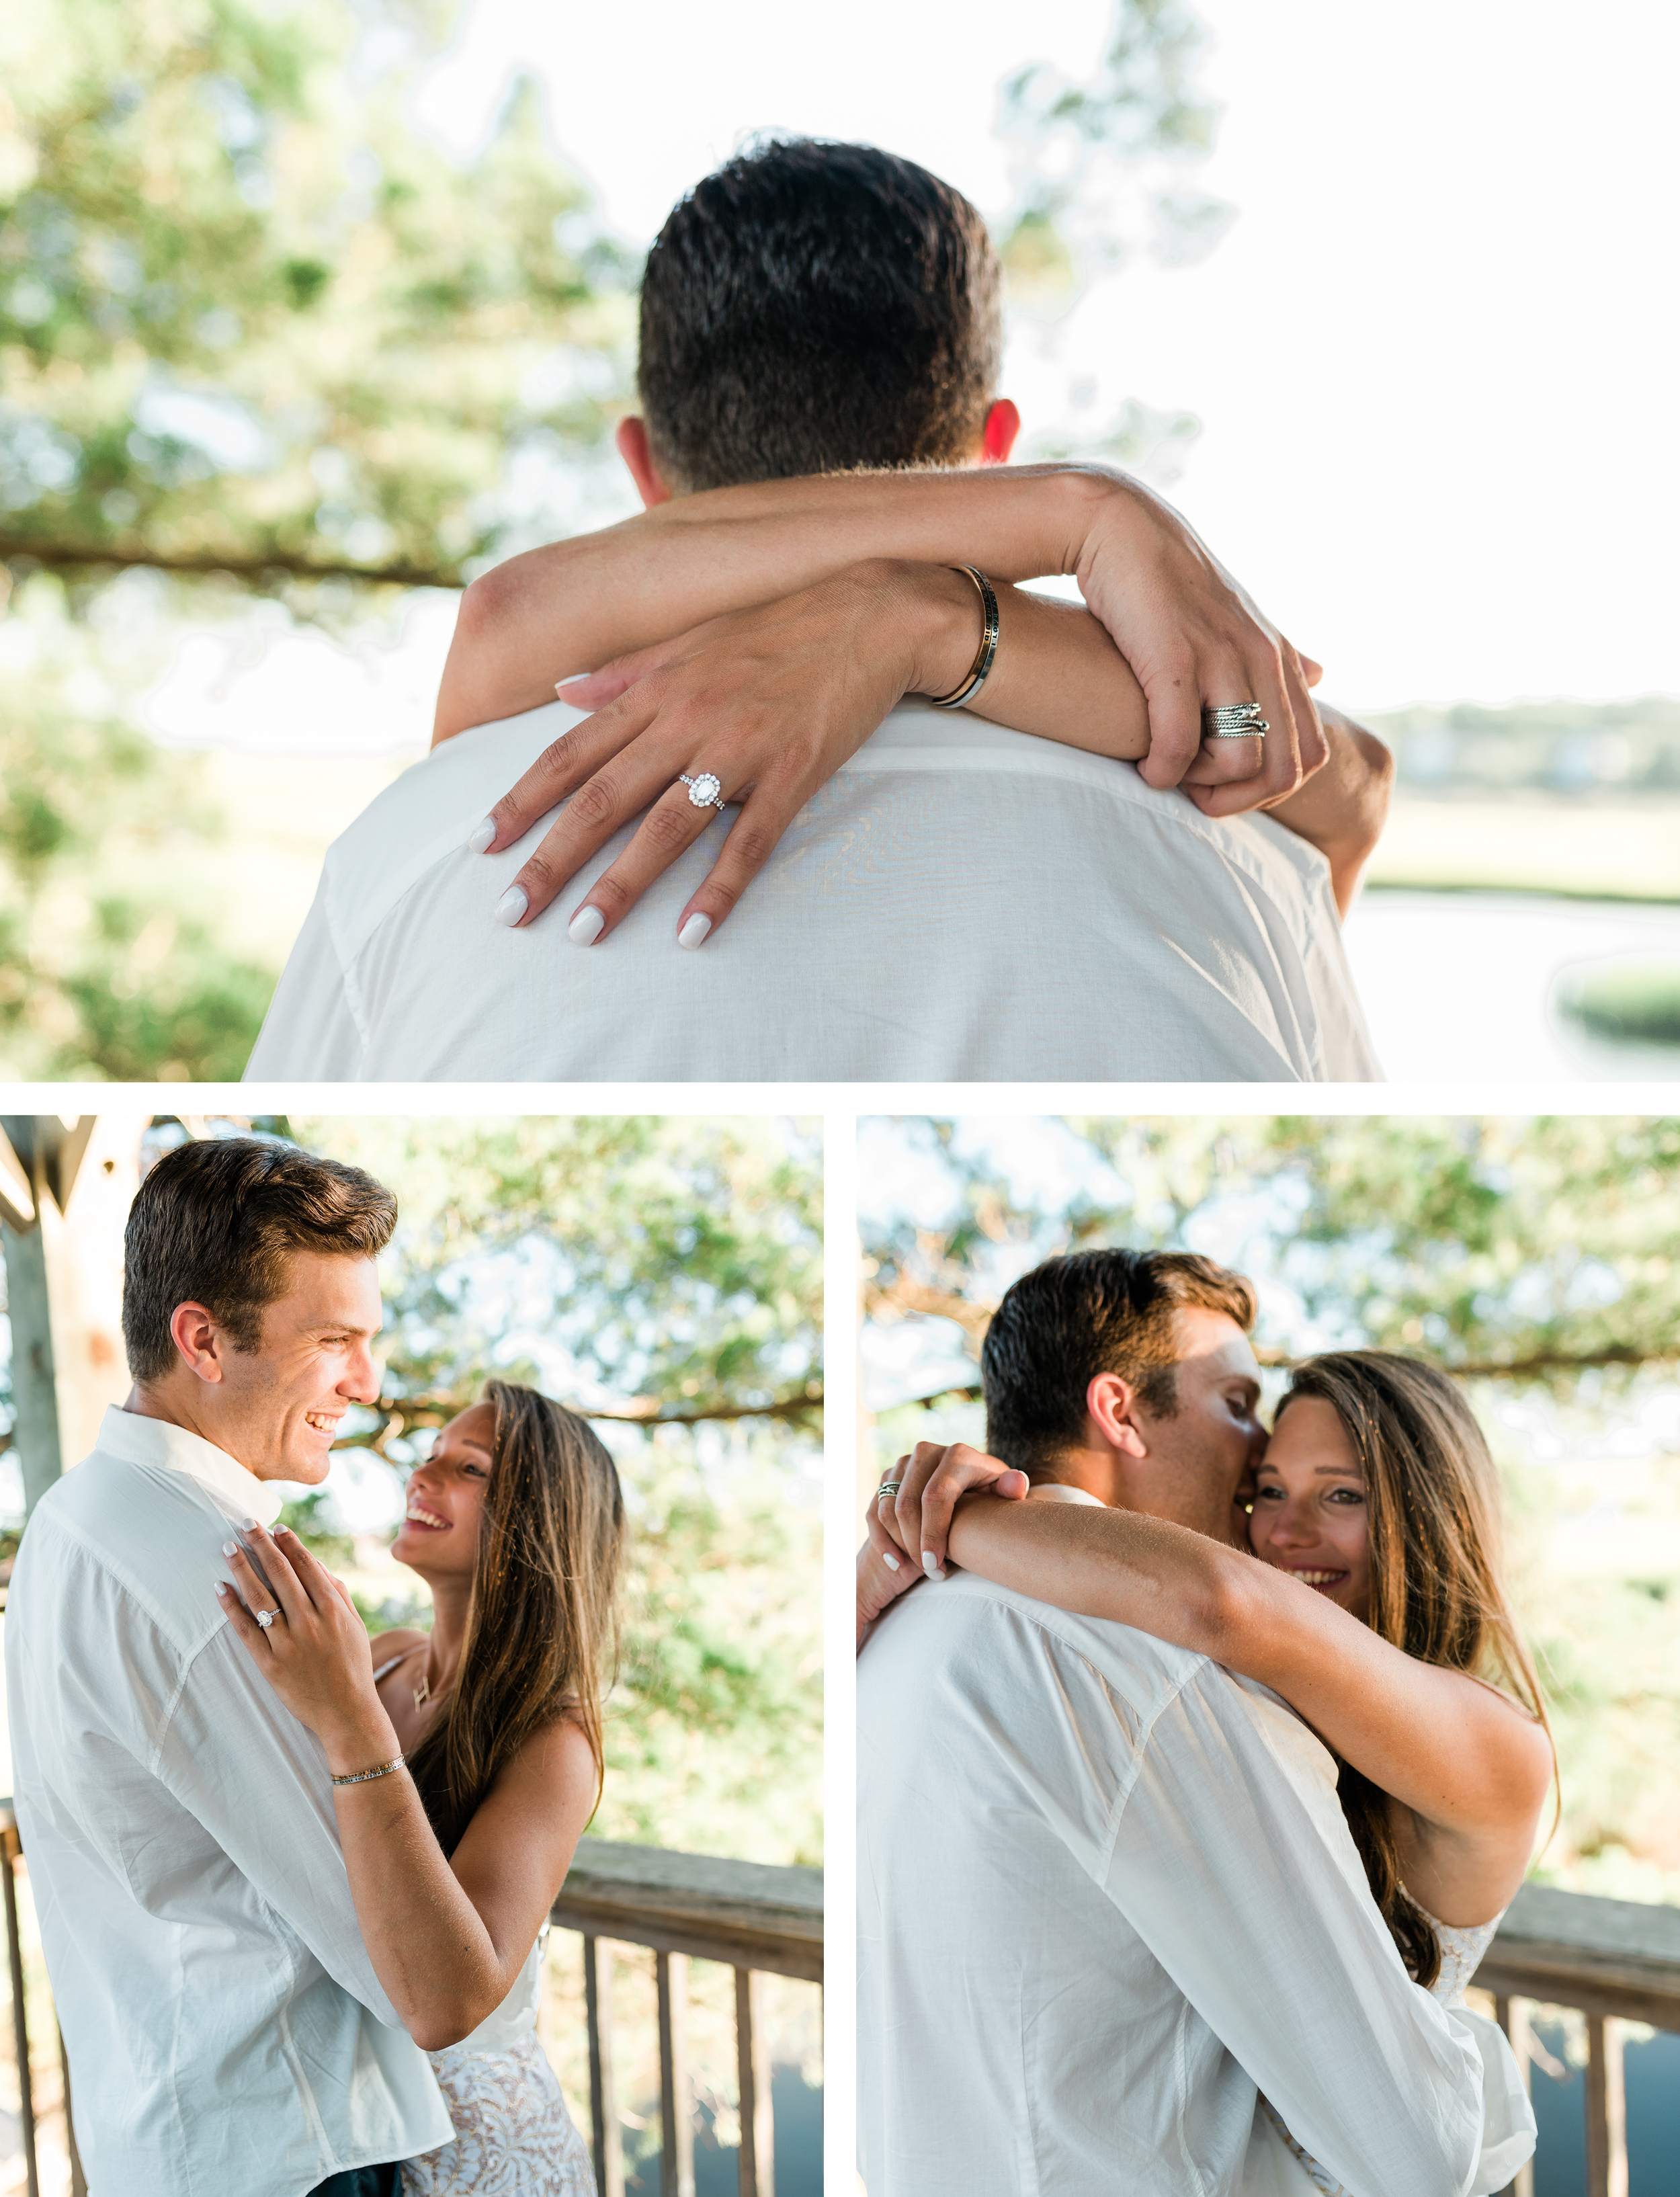 Evan Haley Engagement_Pawleys Island SC_Kristen Paige Photography_Gallery 5.png